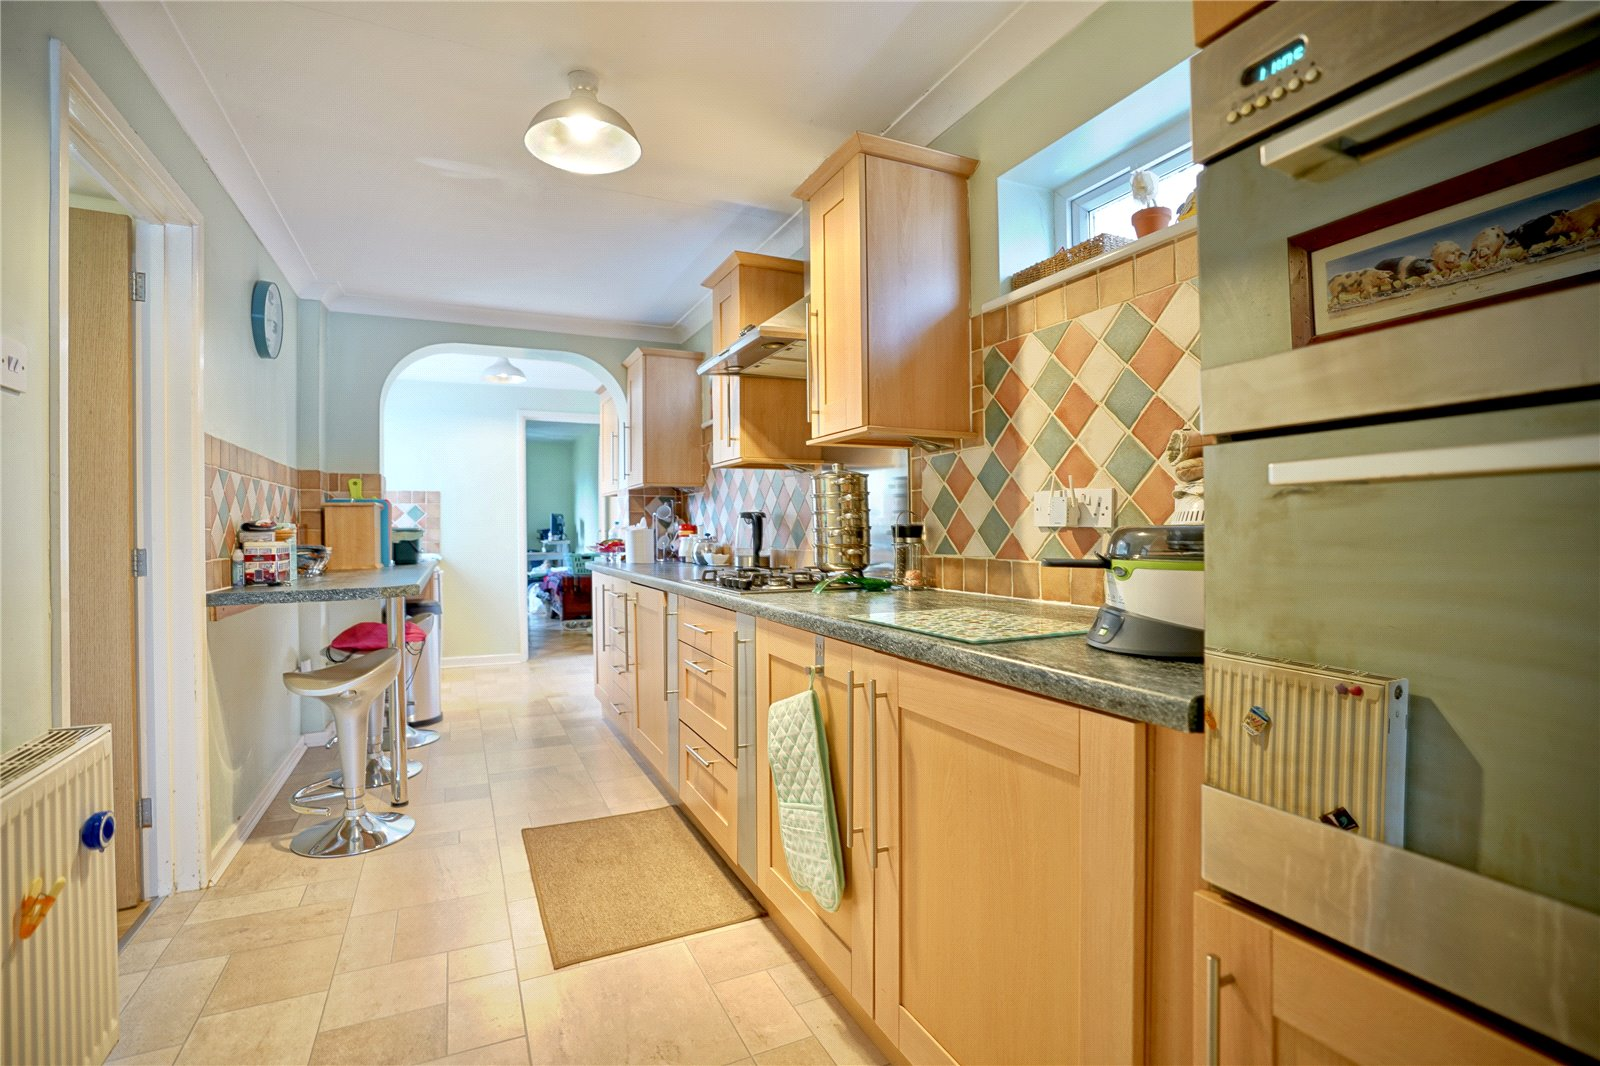 4 bed house for sale in Eaton Socon, PE19 8HU 3